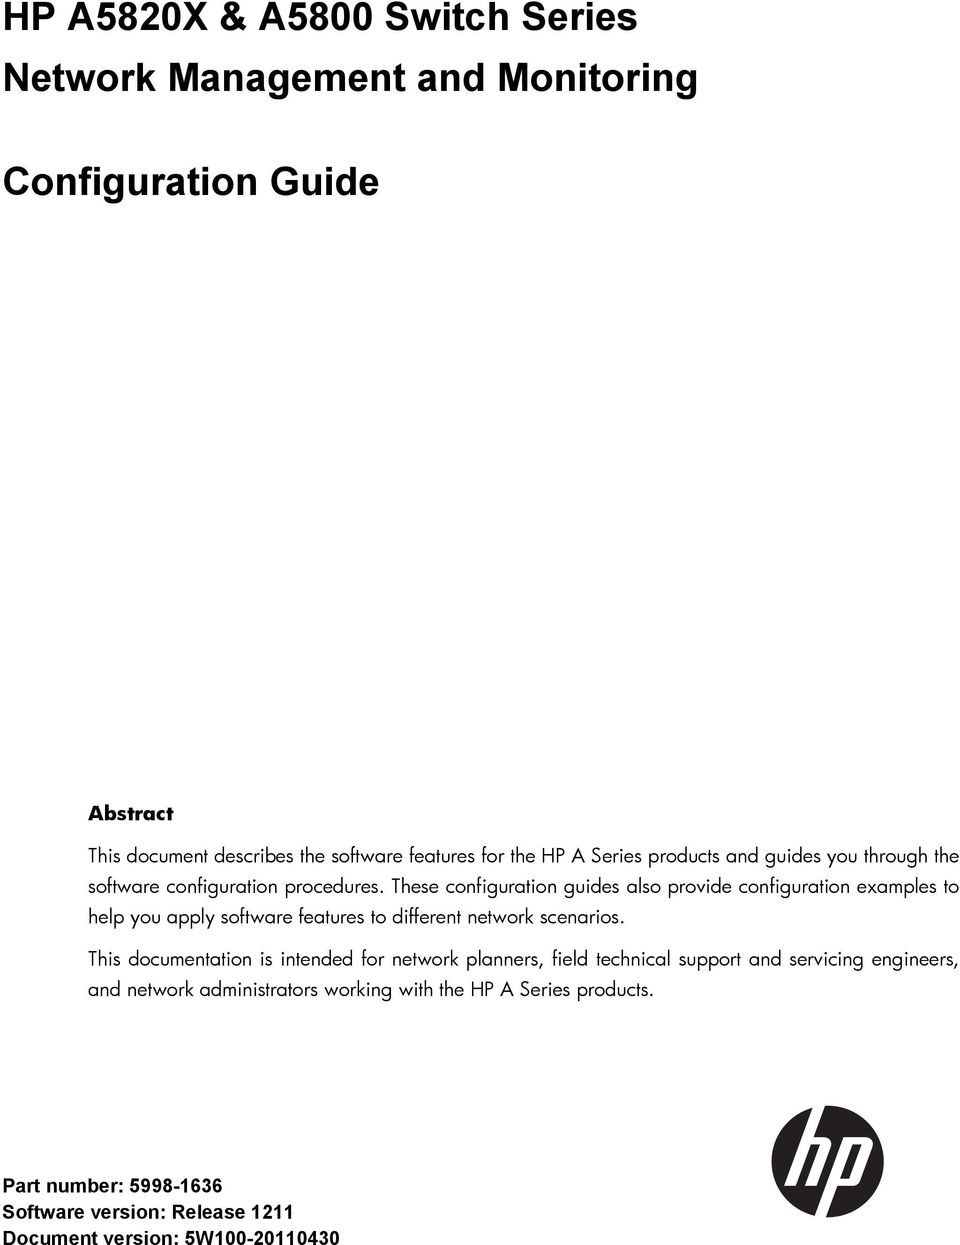 These configuration guides also provide configuration examples to help you apply software features to different network scenarios.